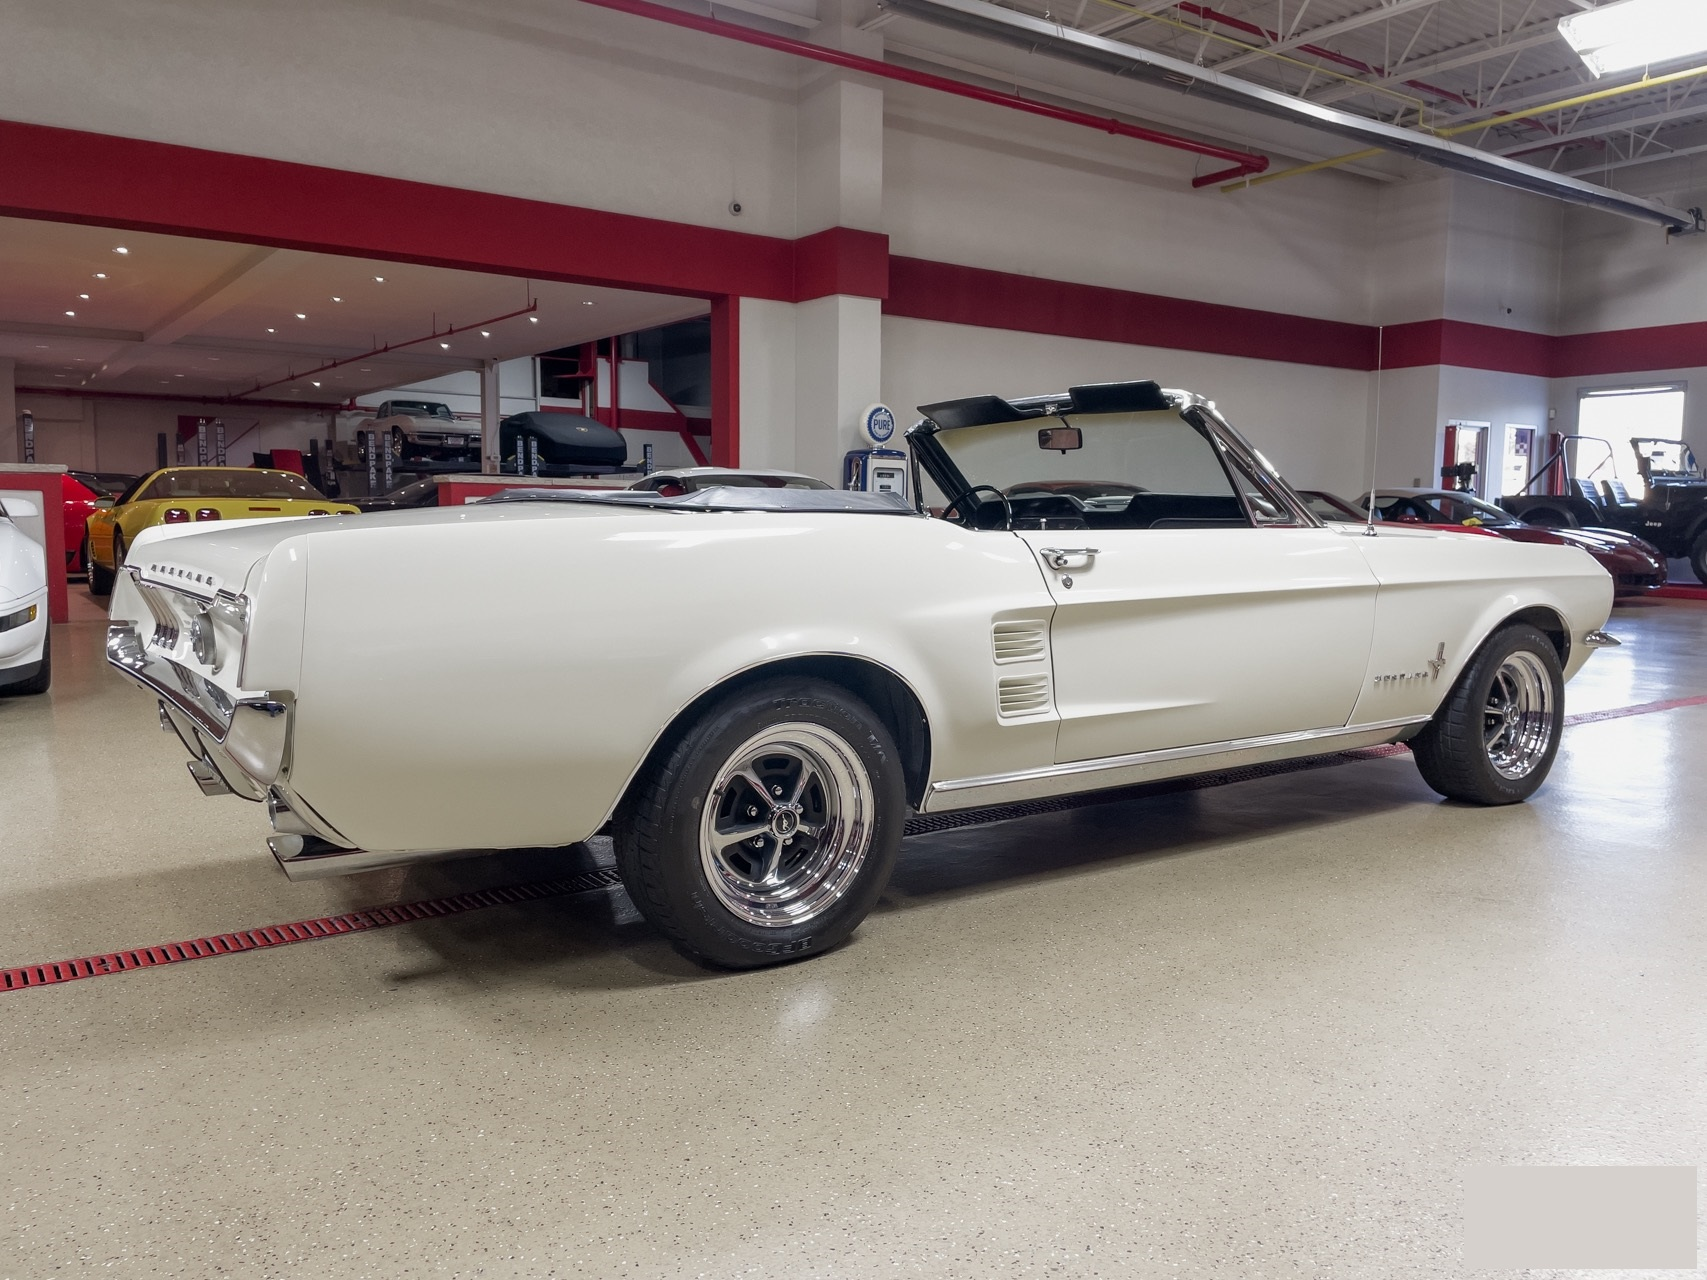 Ford-Mustang-cabriolet-1967-a5